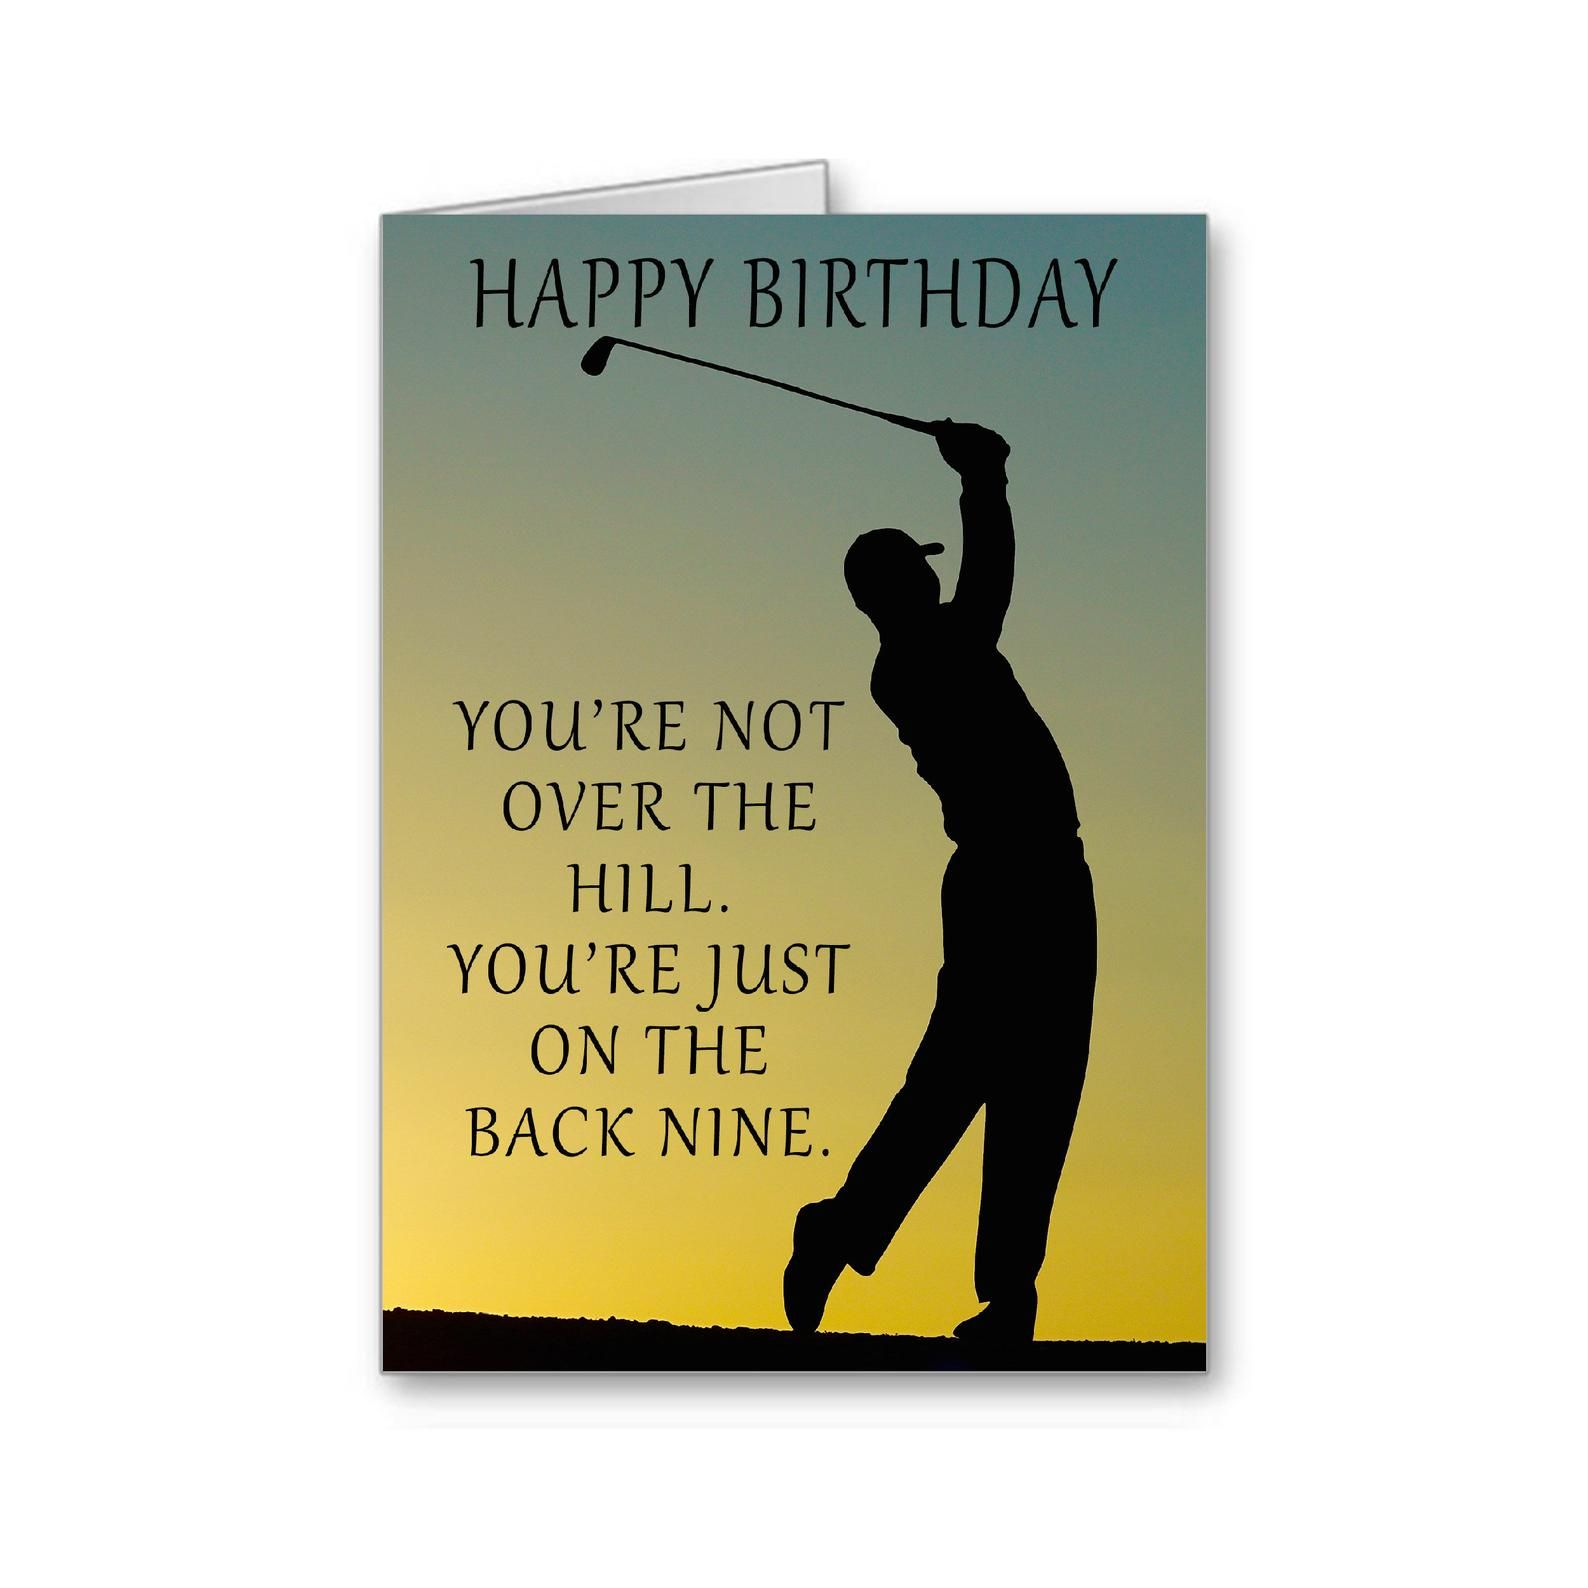 Golf Birthday Card You Re Not Over The Hill You Re Etsy In 2021 Golf Birthday Cards Birthday Wishes For Men Happy Birthday Golf